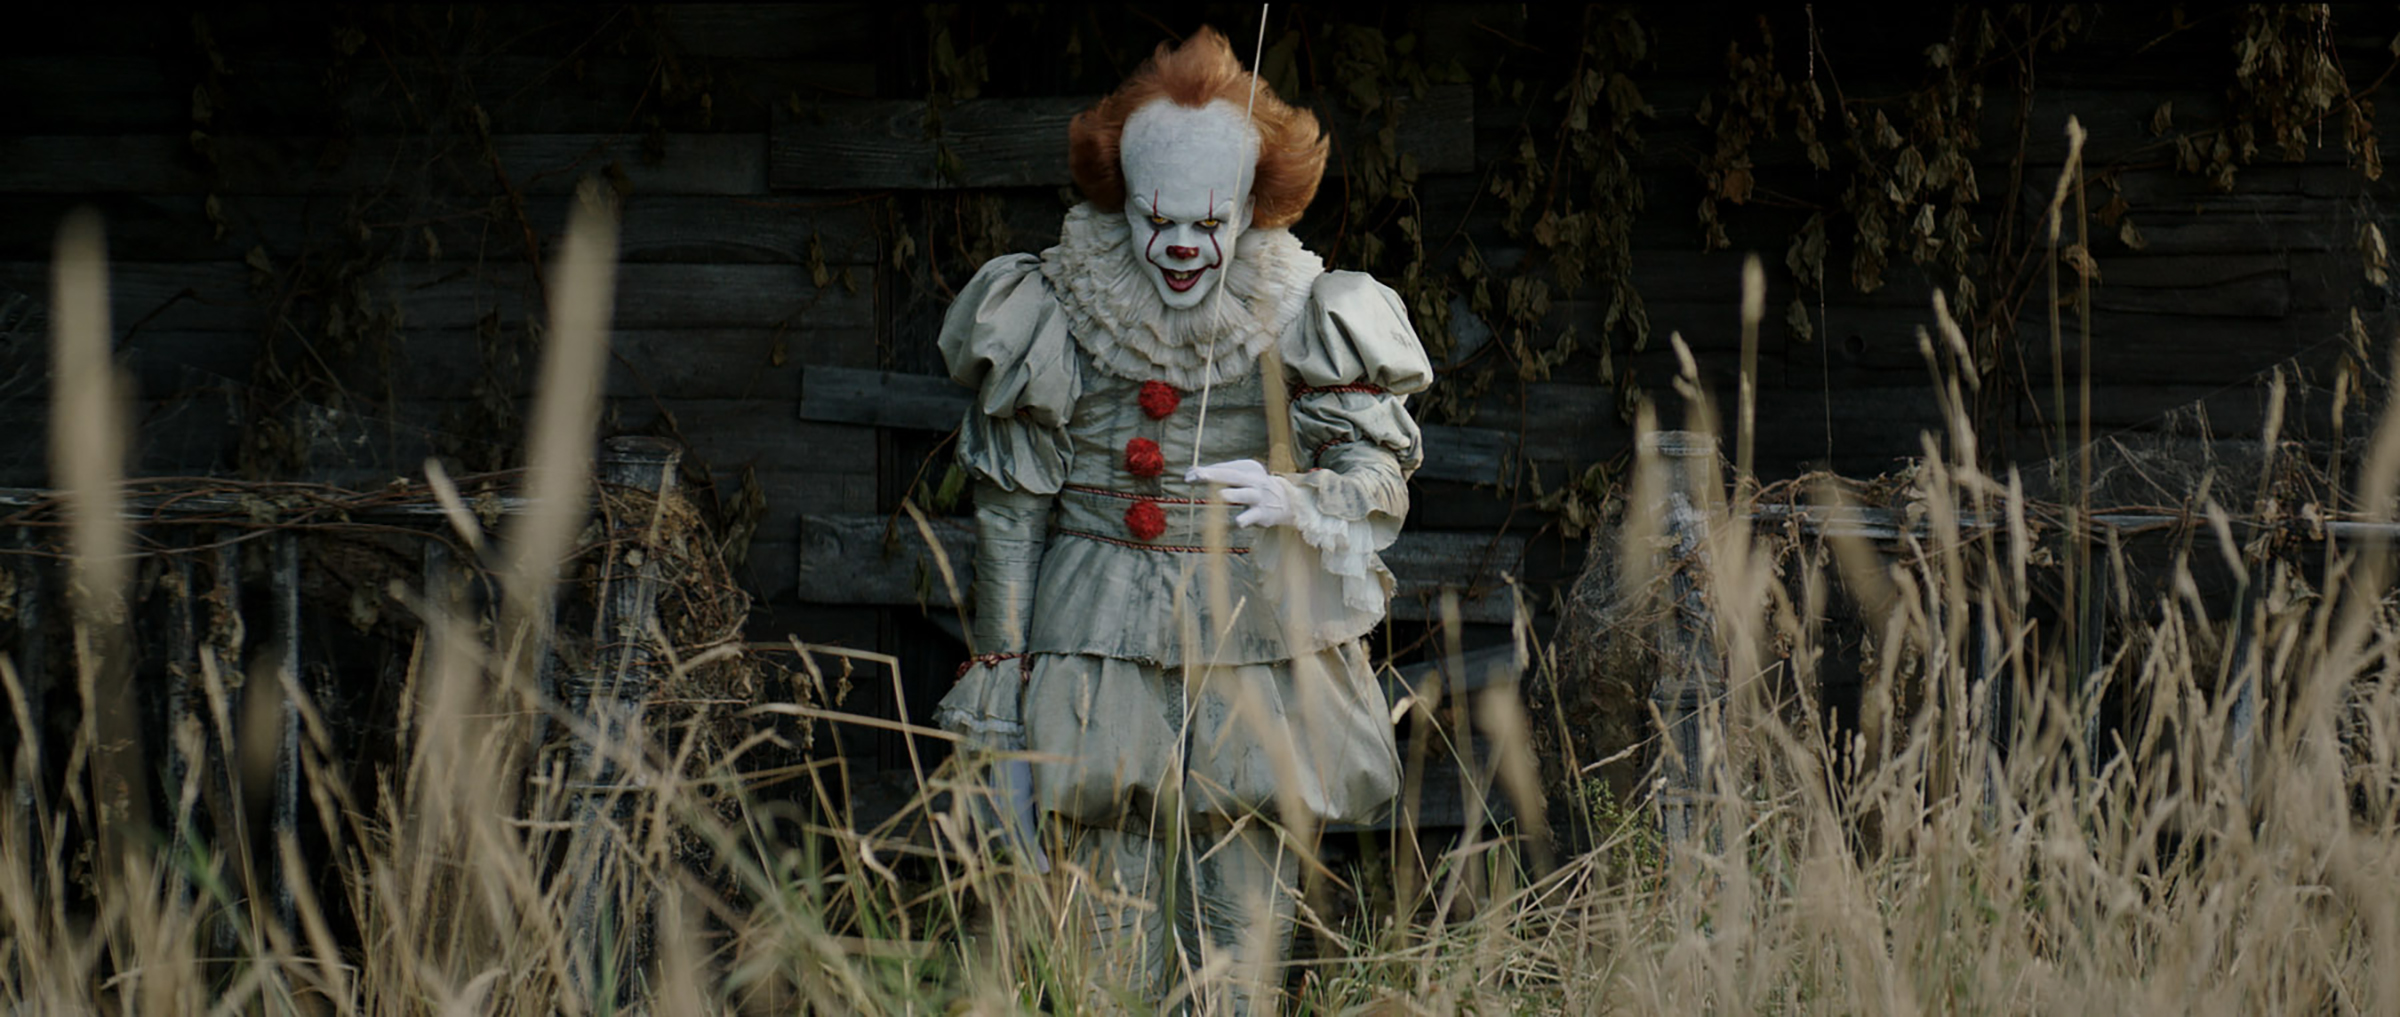 it-film-pennywise-stephen-king-2